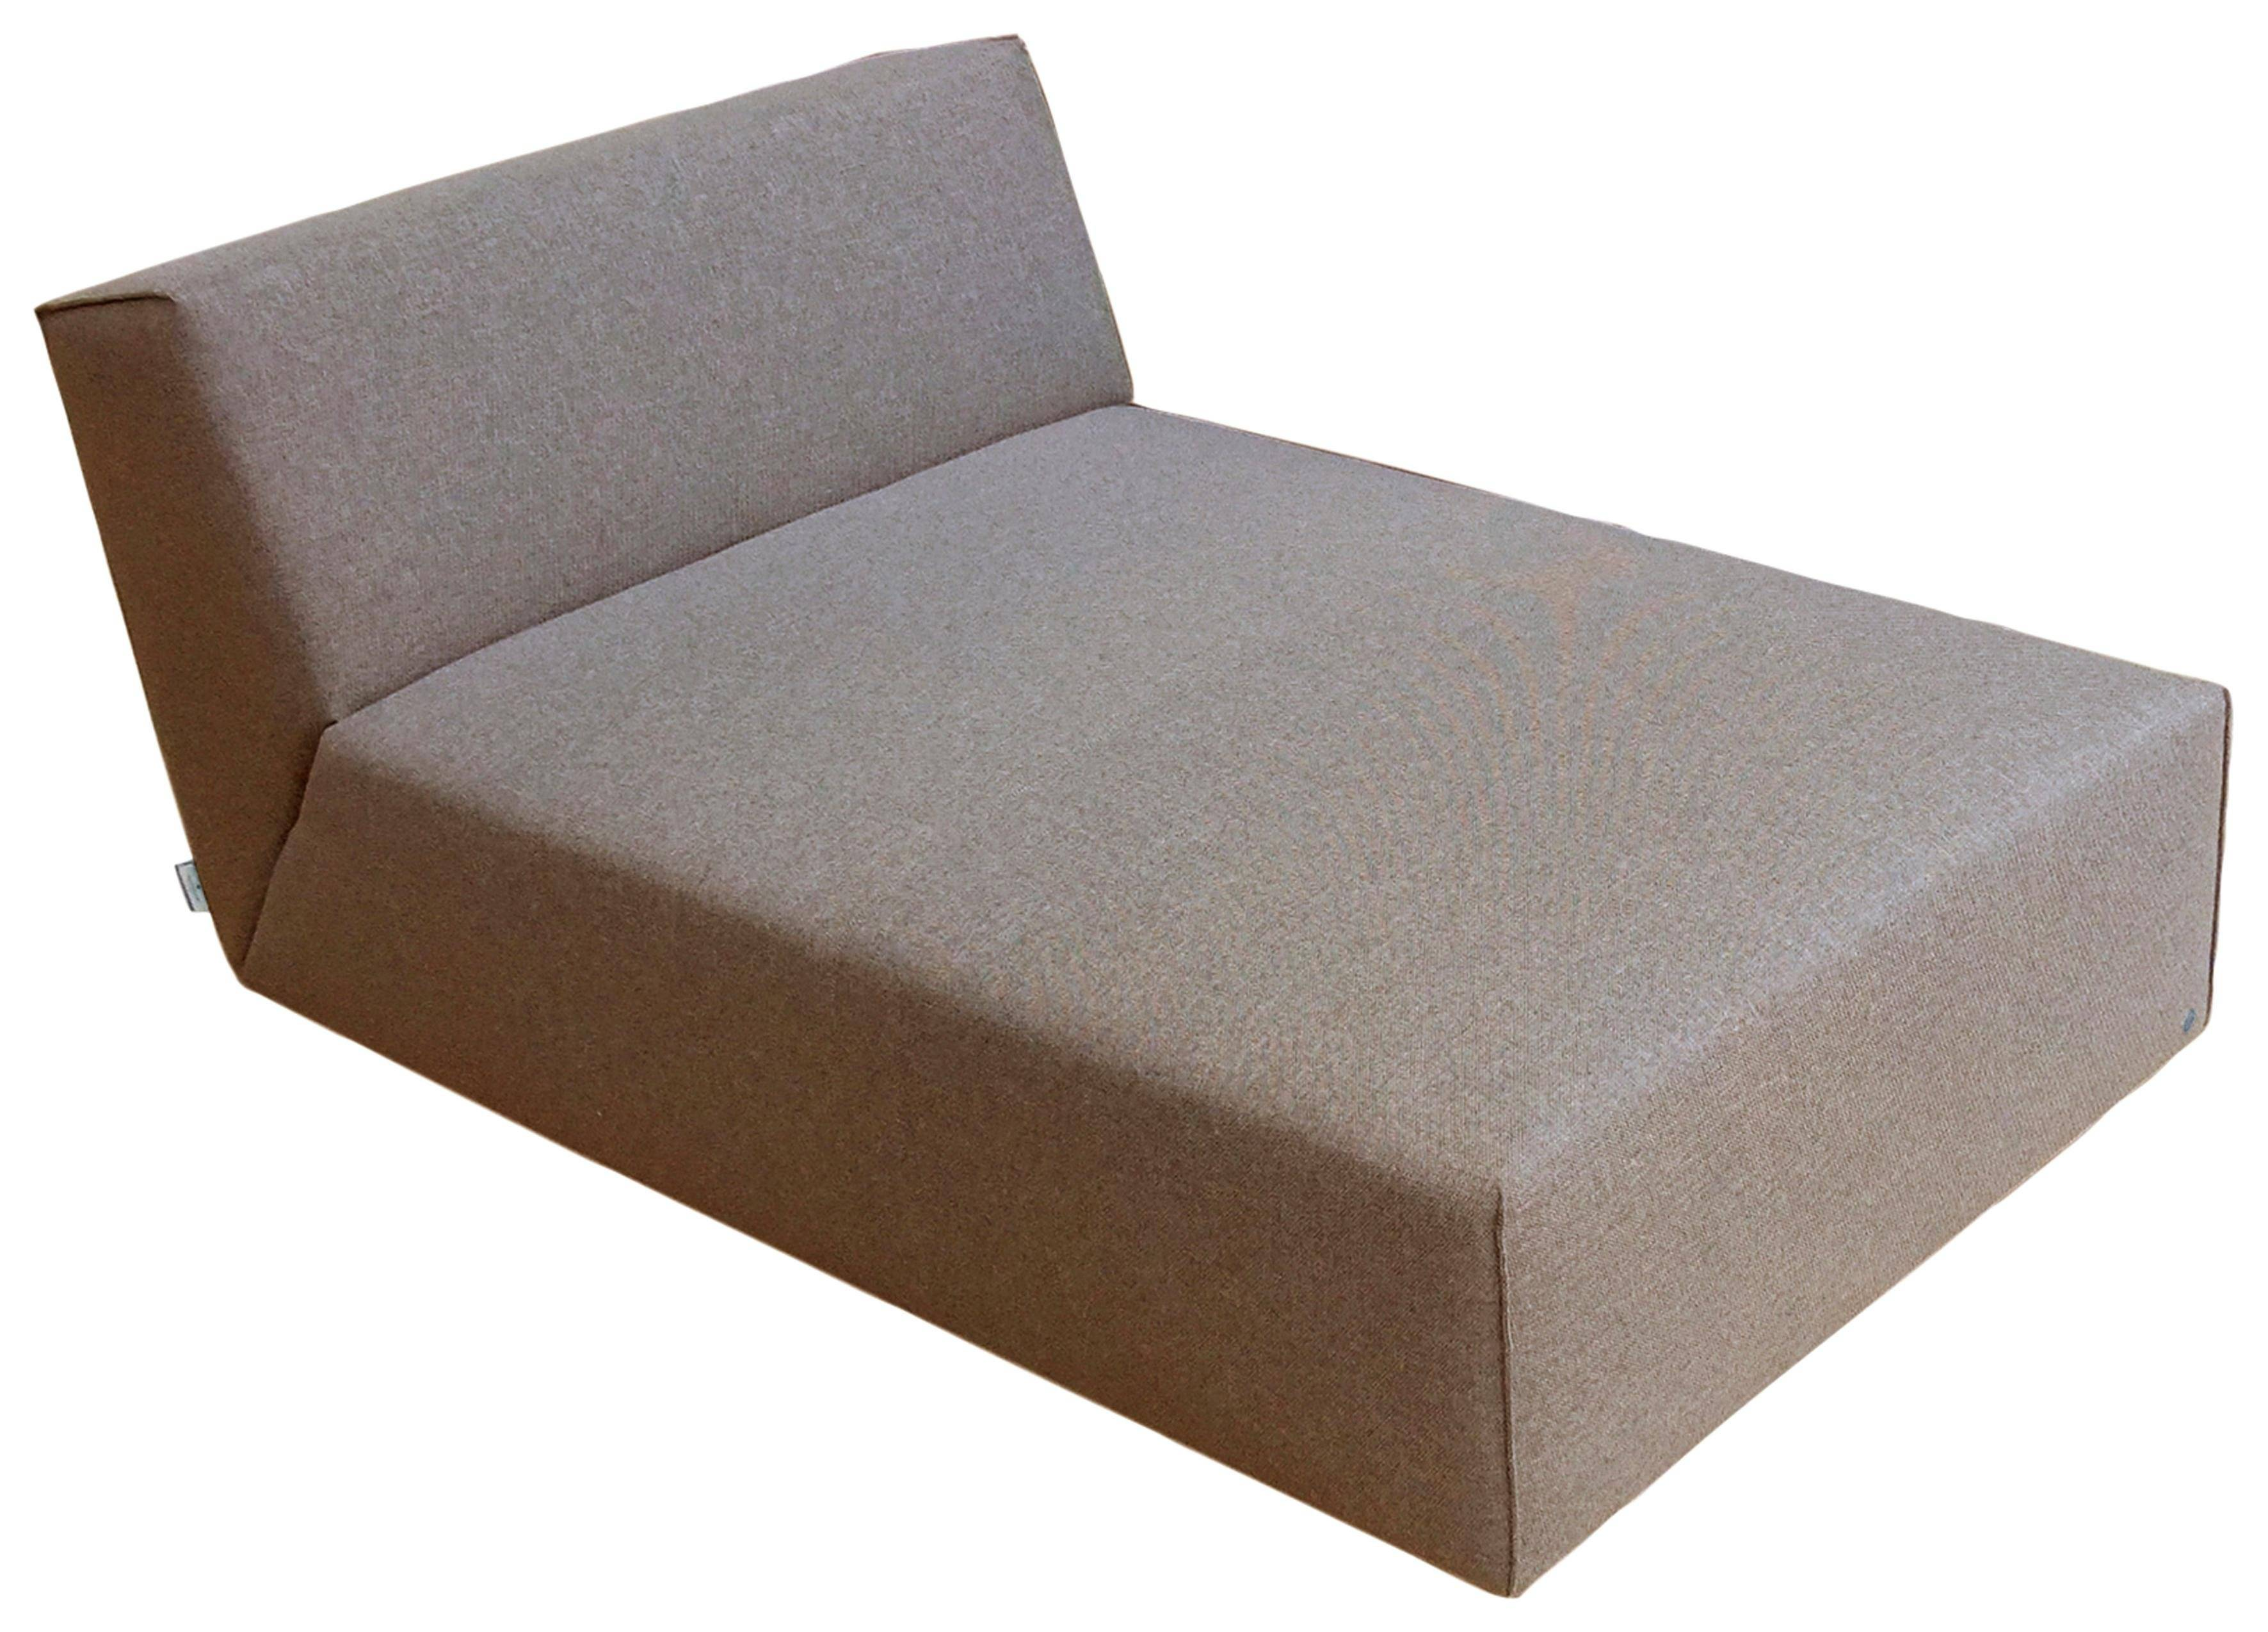 TOM TAILOR Chaiselongue »ELEMENTS«, Sofaelement wahlweise mit Bettfunktion, coconut brown TBO 12